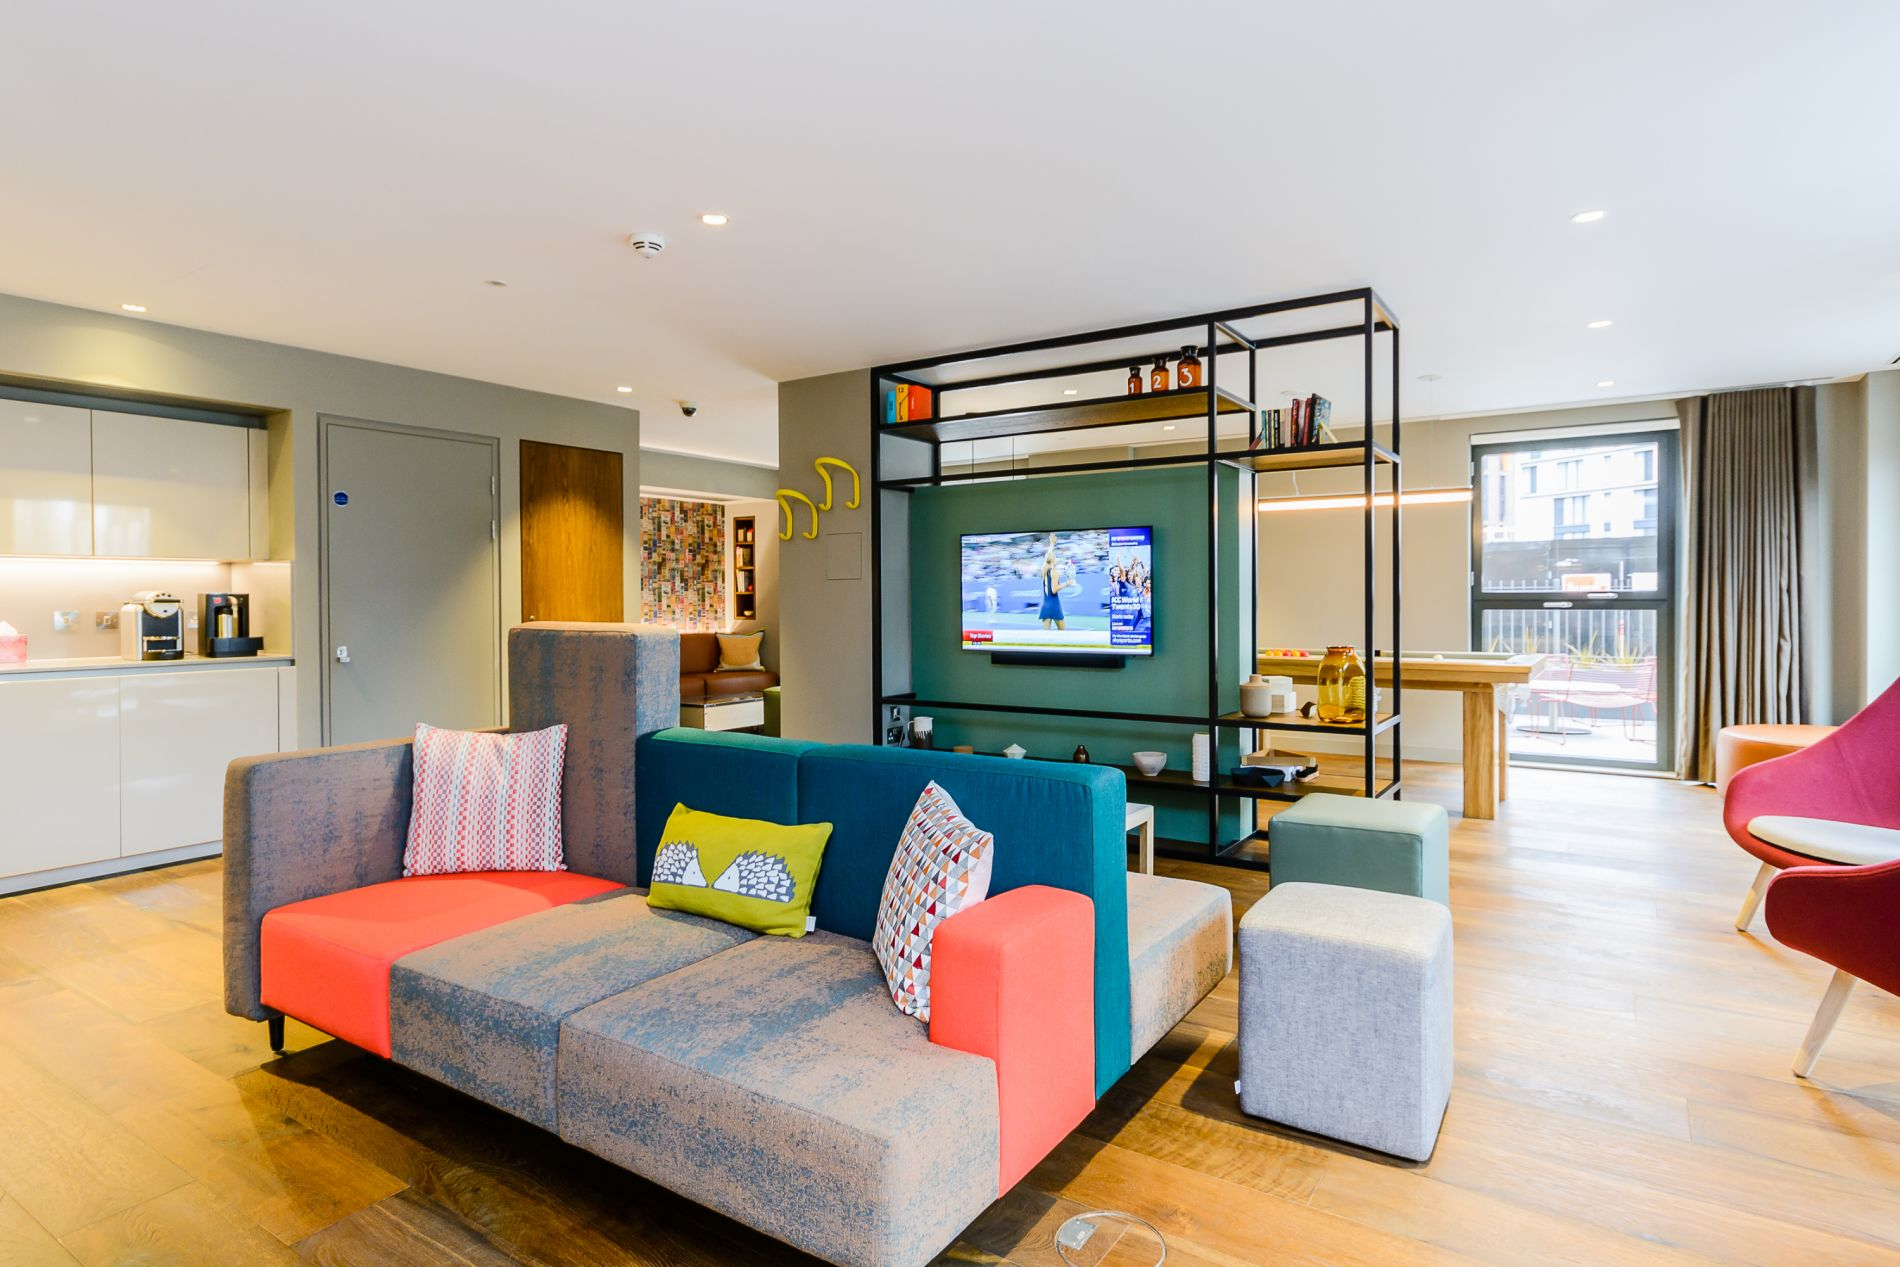 Serviced rental in Wembley, London